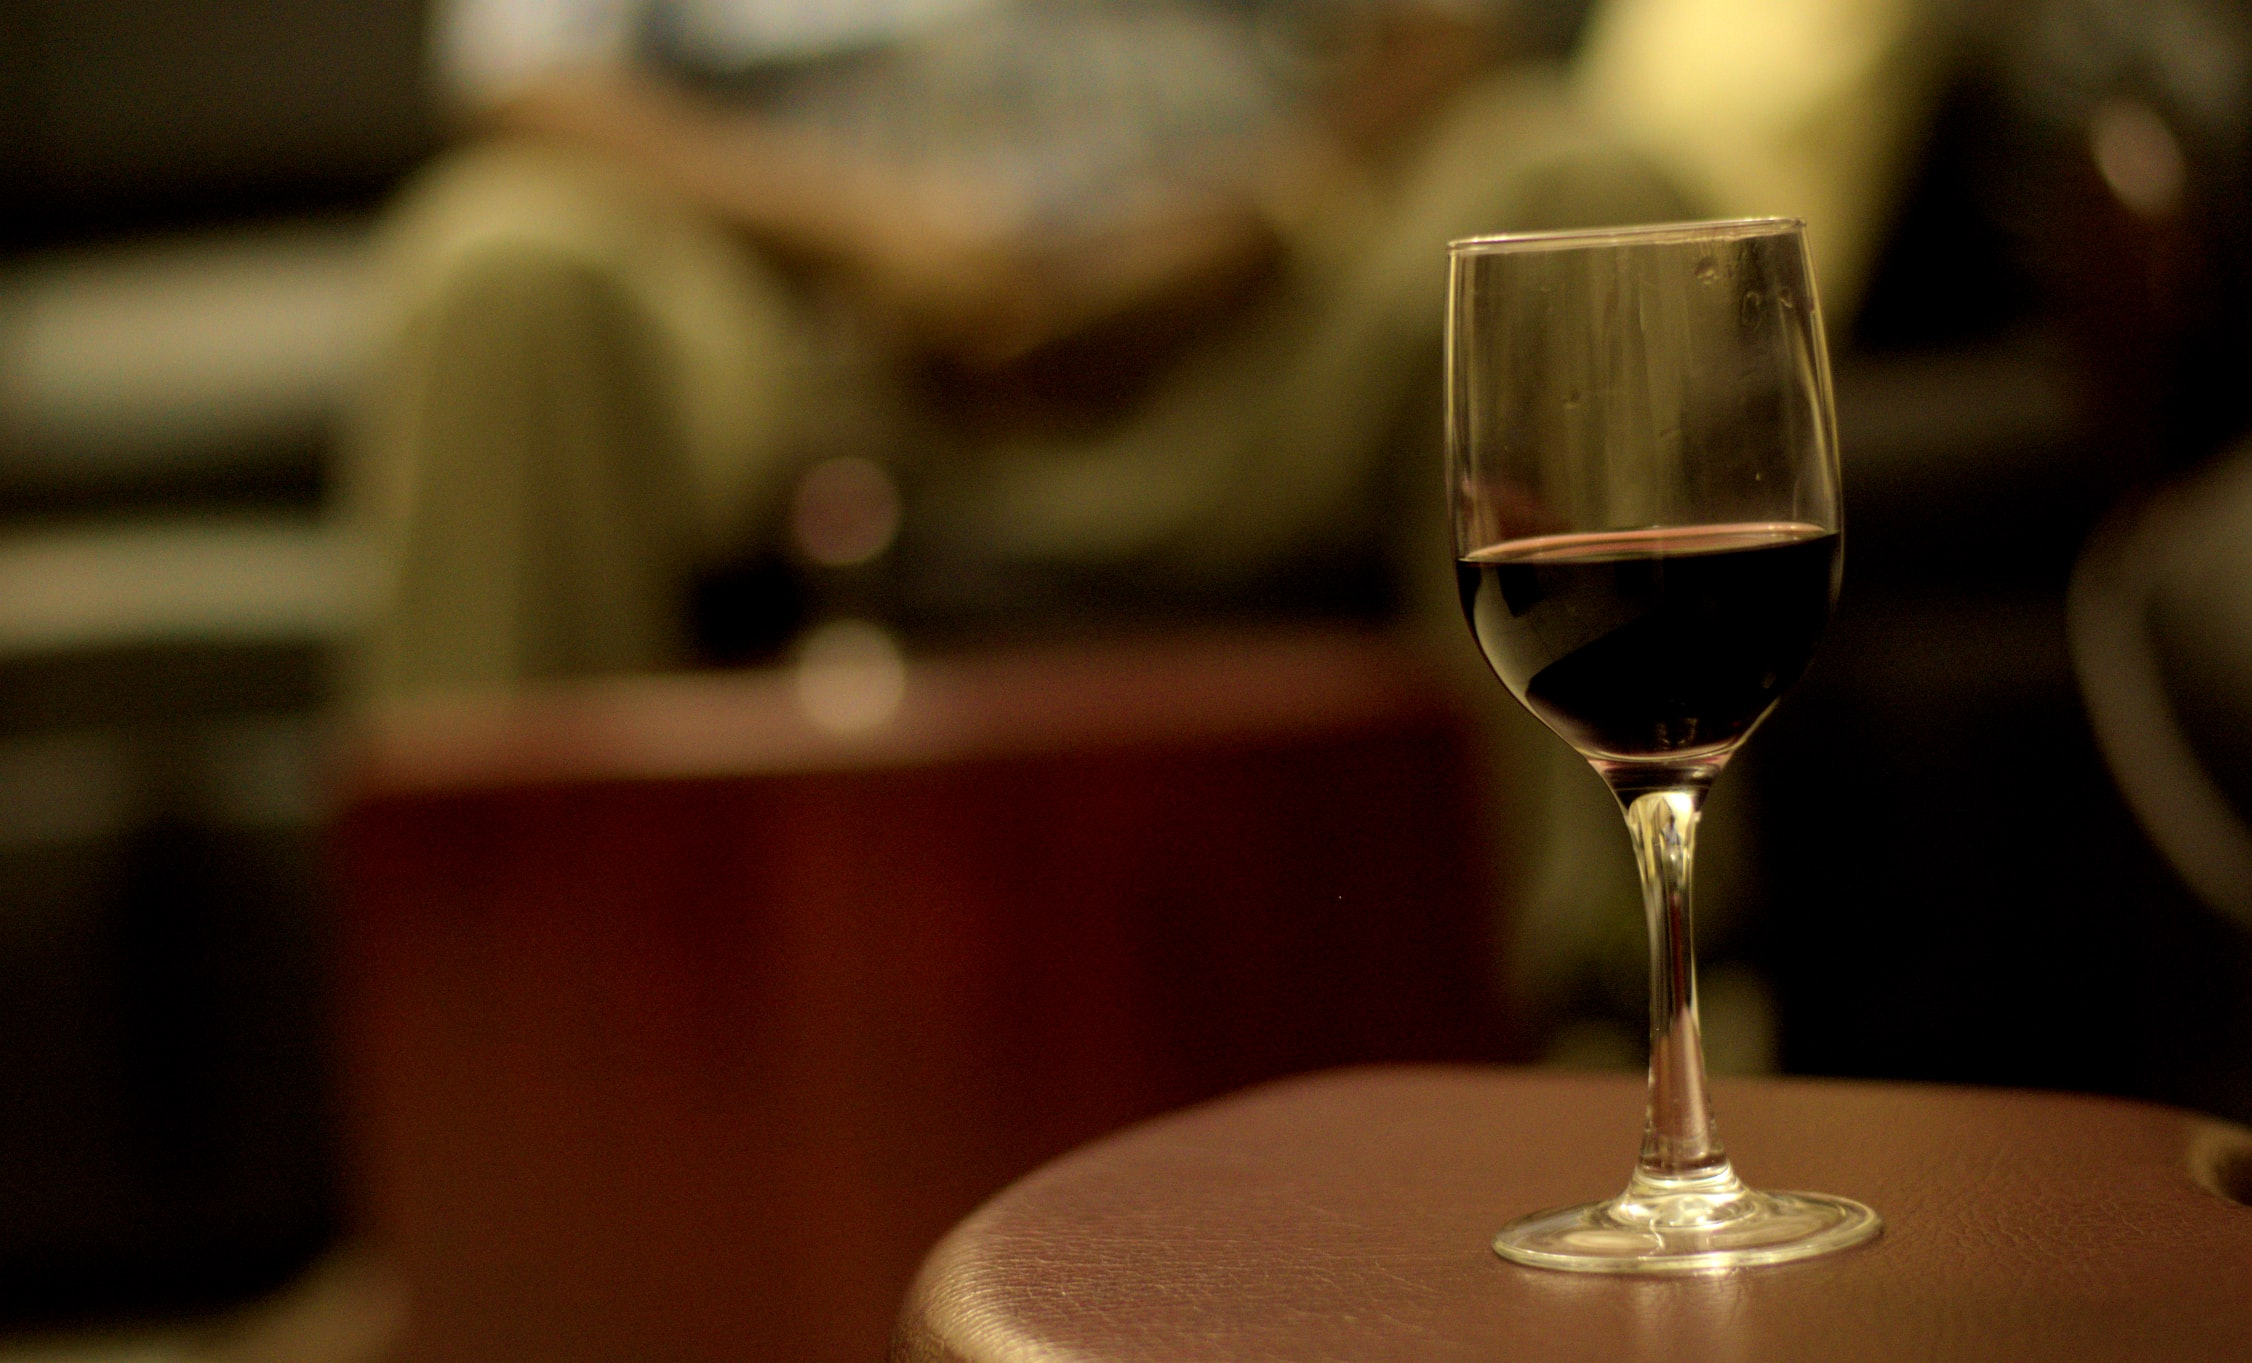 A single glass of red wine on a bar table.